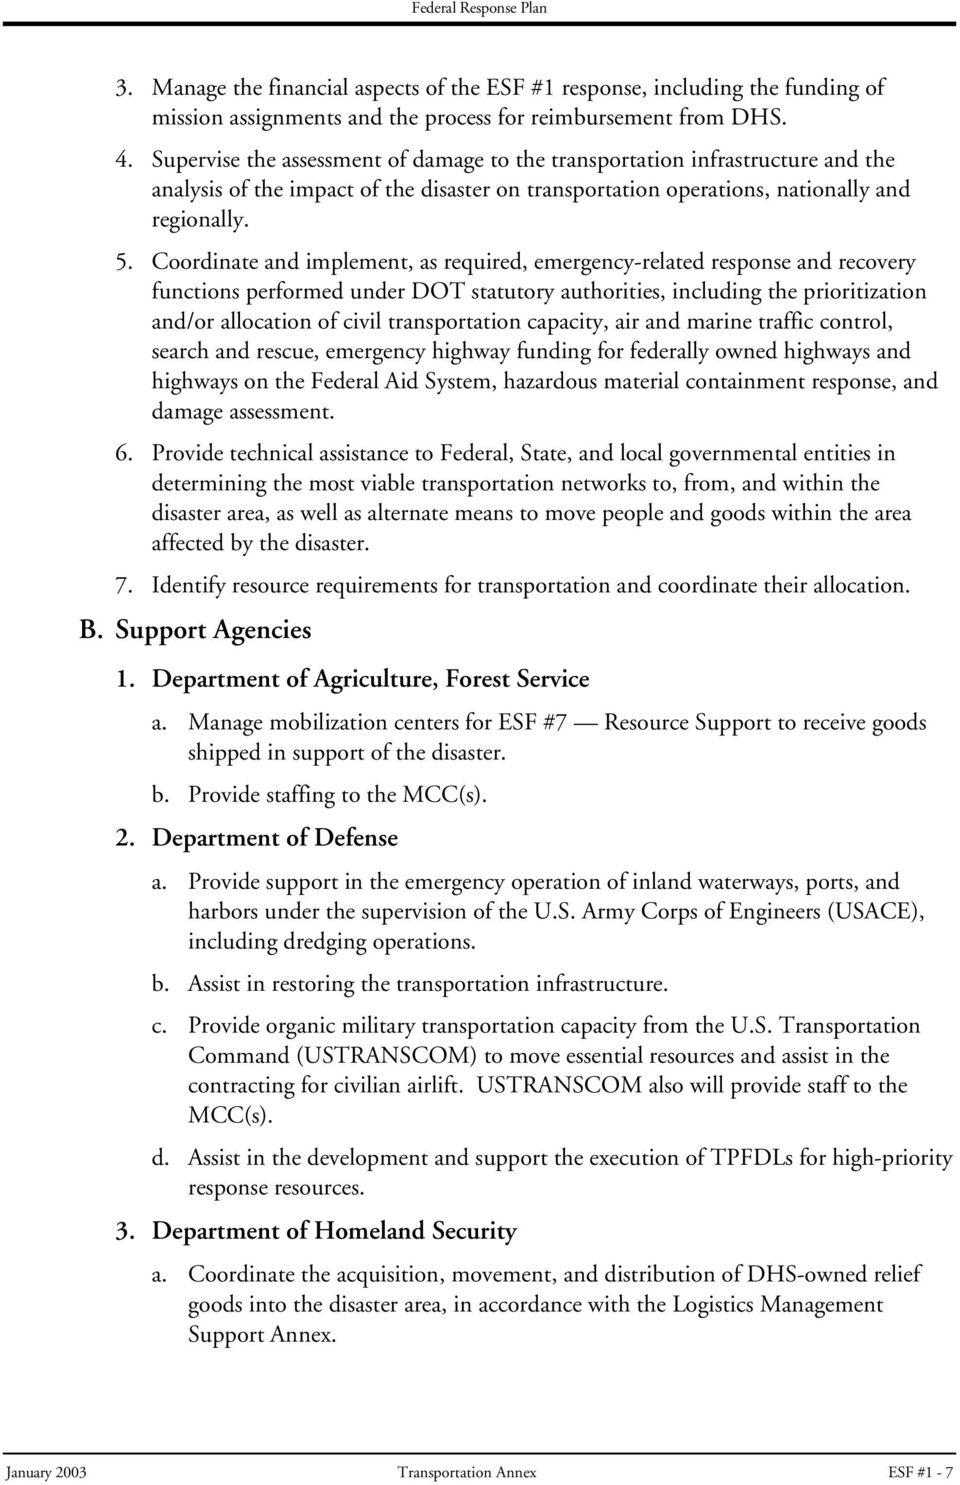 Coordinate and implement, as required, emergency-related response and recovery functions performed under DOT statutory authorities, including the prioritization and/or allocation of civil